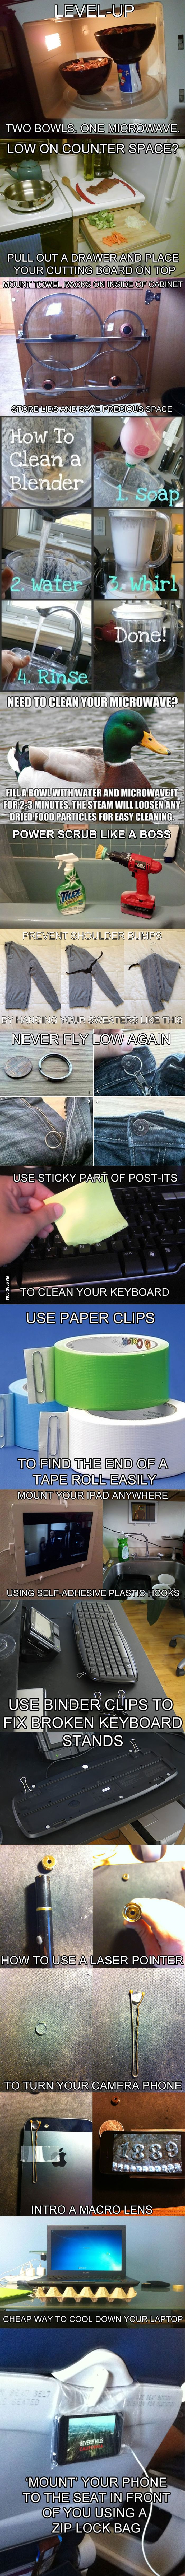 Brilliant Life Hacks